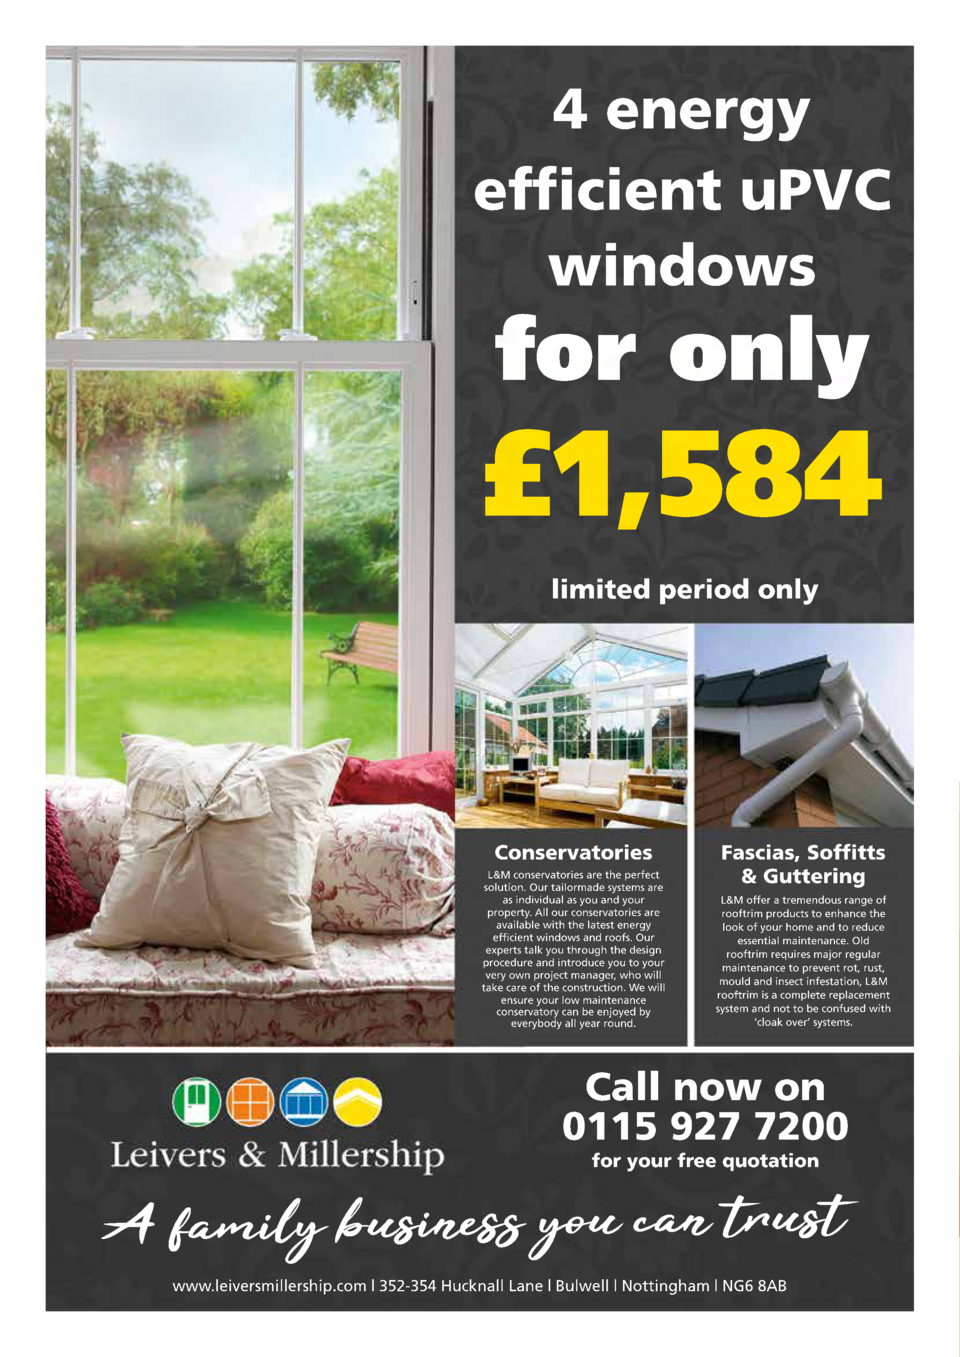 120  INSERT HEADER COPY  4 energy efficient uPVC windows  for only    1,584 limited period only  Conservatories L M conser...